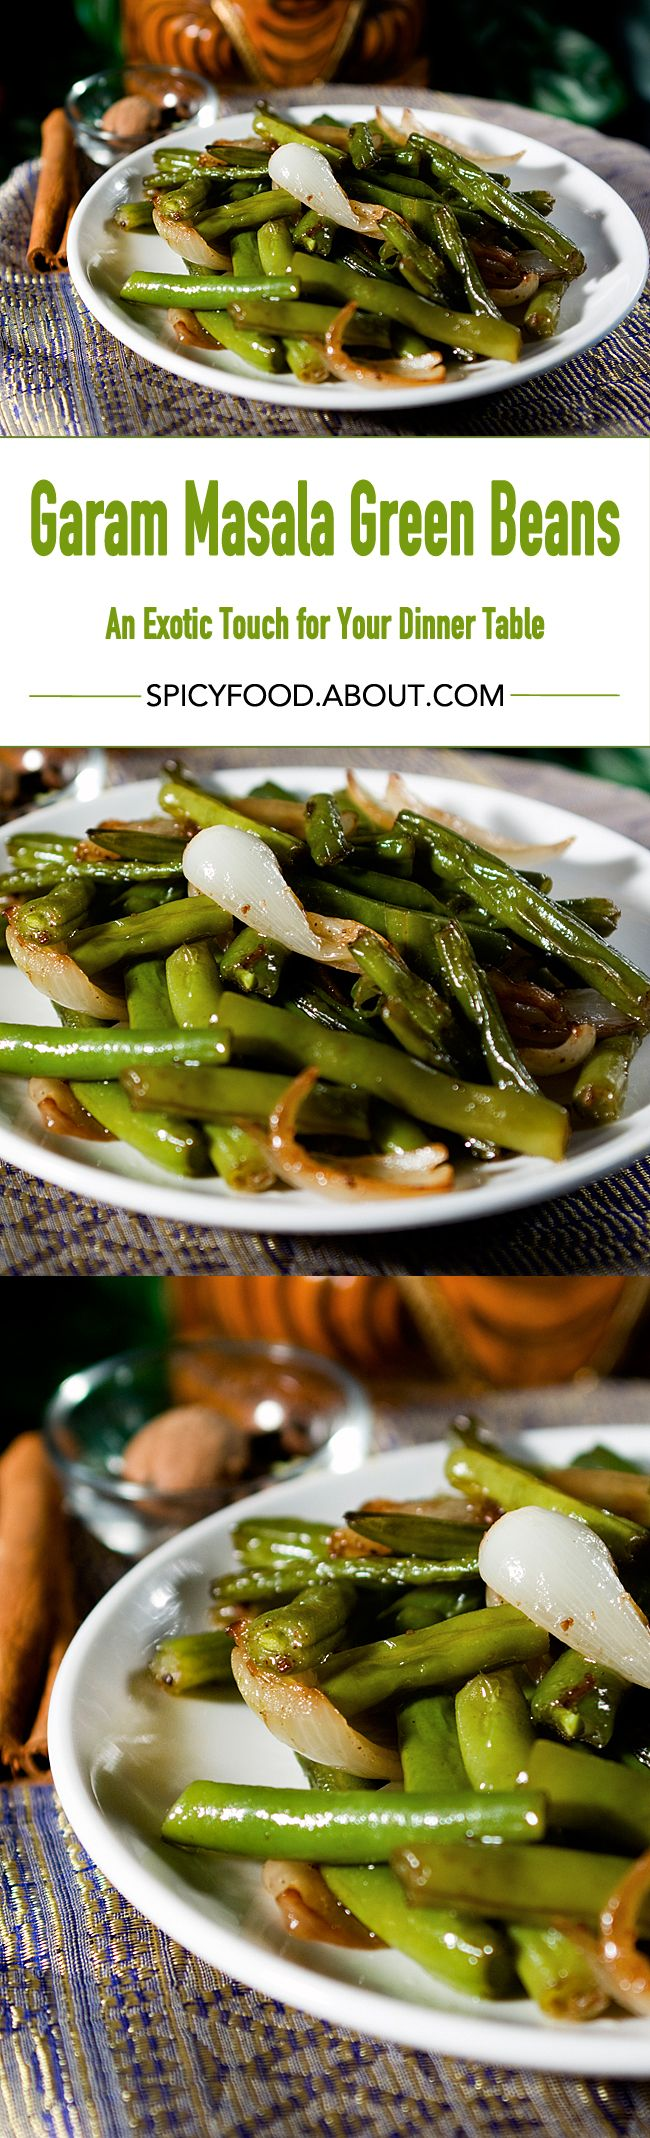 59 best dish images on pinterest cooking food cooking recipes and garam masala green beans an exotic touch for your dinner table garammasala forumfinder Images